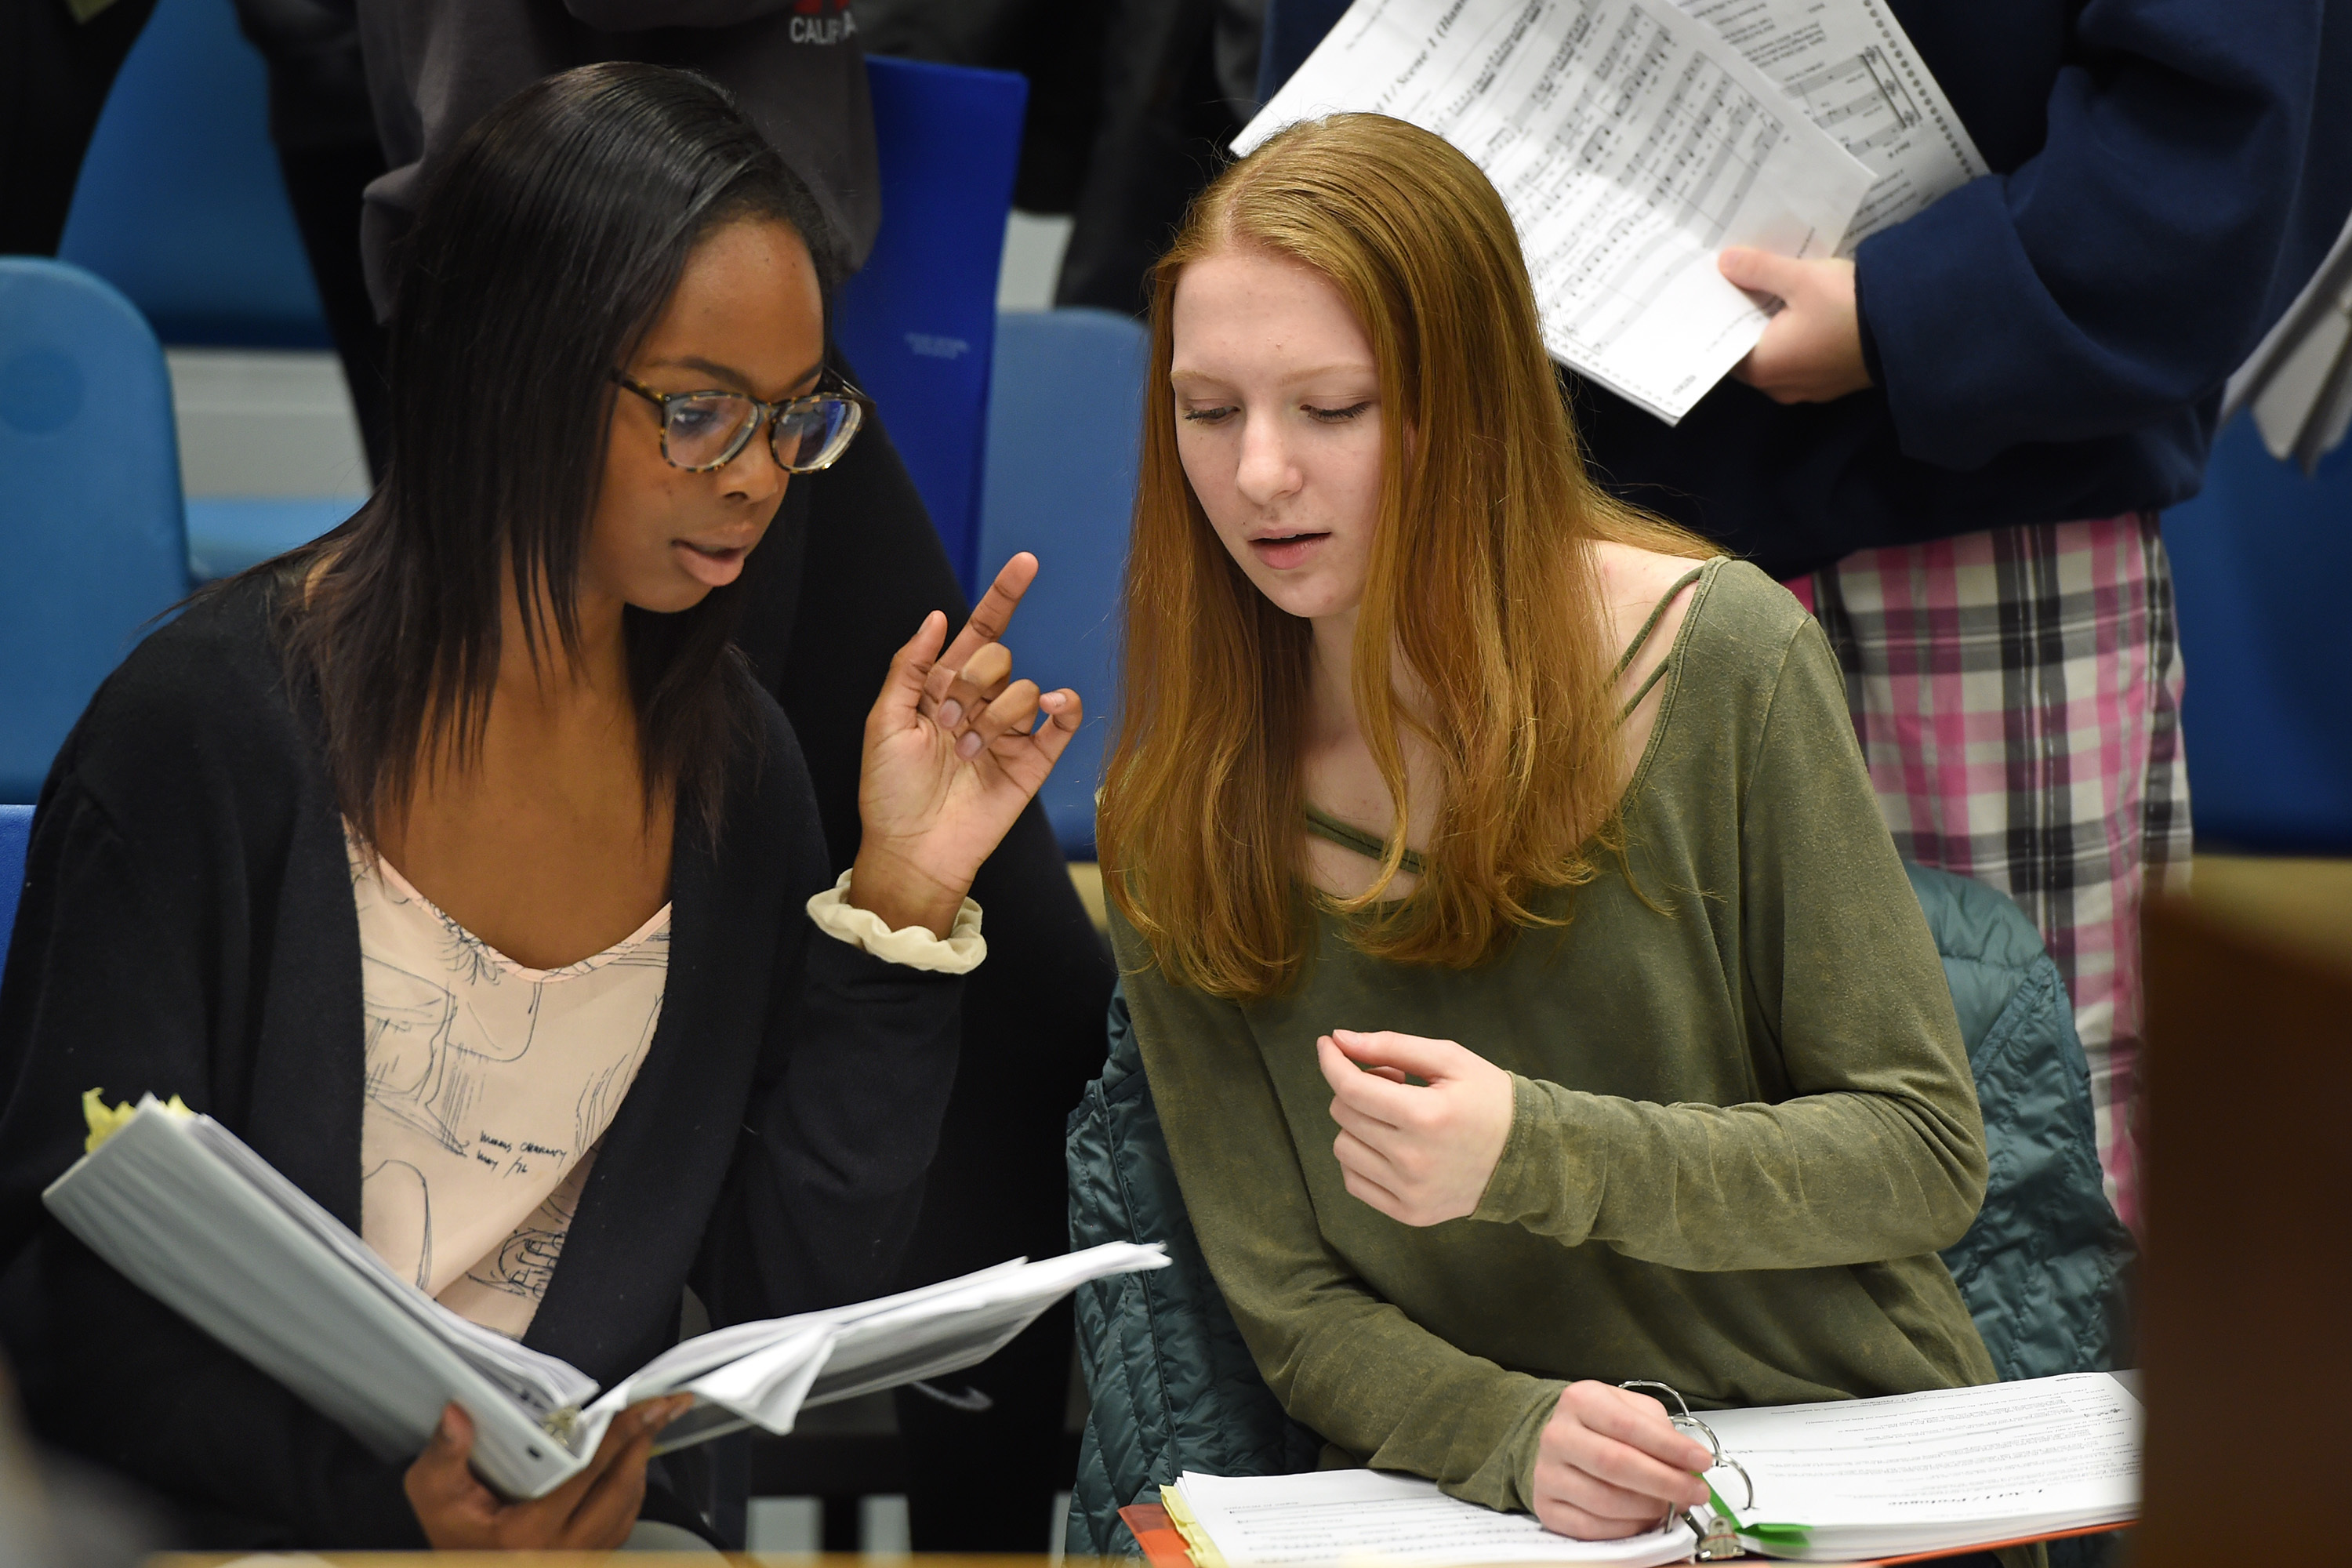 Cherry Hill High School West students Shania Walcott (left) and Jenna Hopkins (right) singing as Christine Daae (there are two casts) talk about the music as they rehearse their production of the Phantom of the Opera January 23, 2018. The arts are big in Cherry Hill where the district´s two high schools put on elaborate productions twice a year. Across the region, arts programs have struggled in some public schools in lean economic times. Schools have had to get creative in fundraising or turn to parents. TOM GRALISH / Staff Photographer